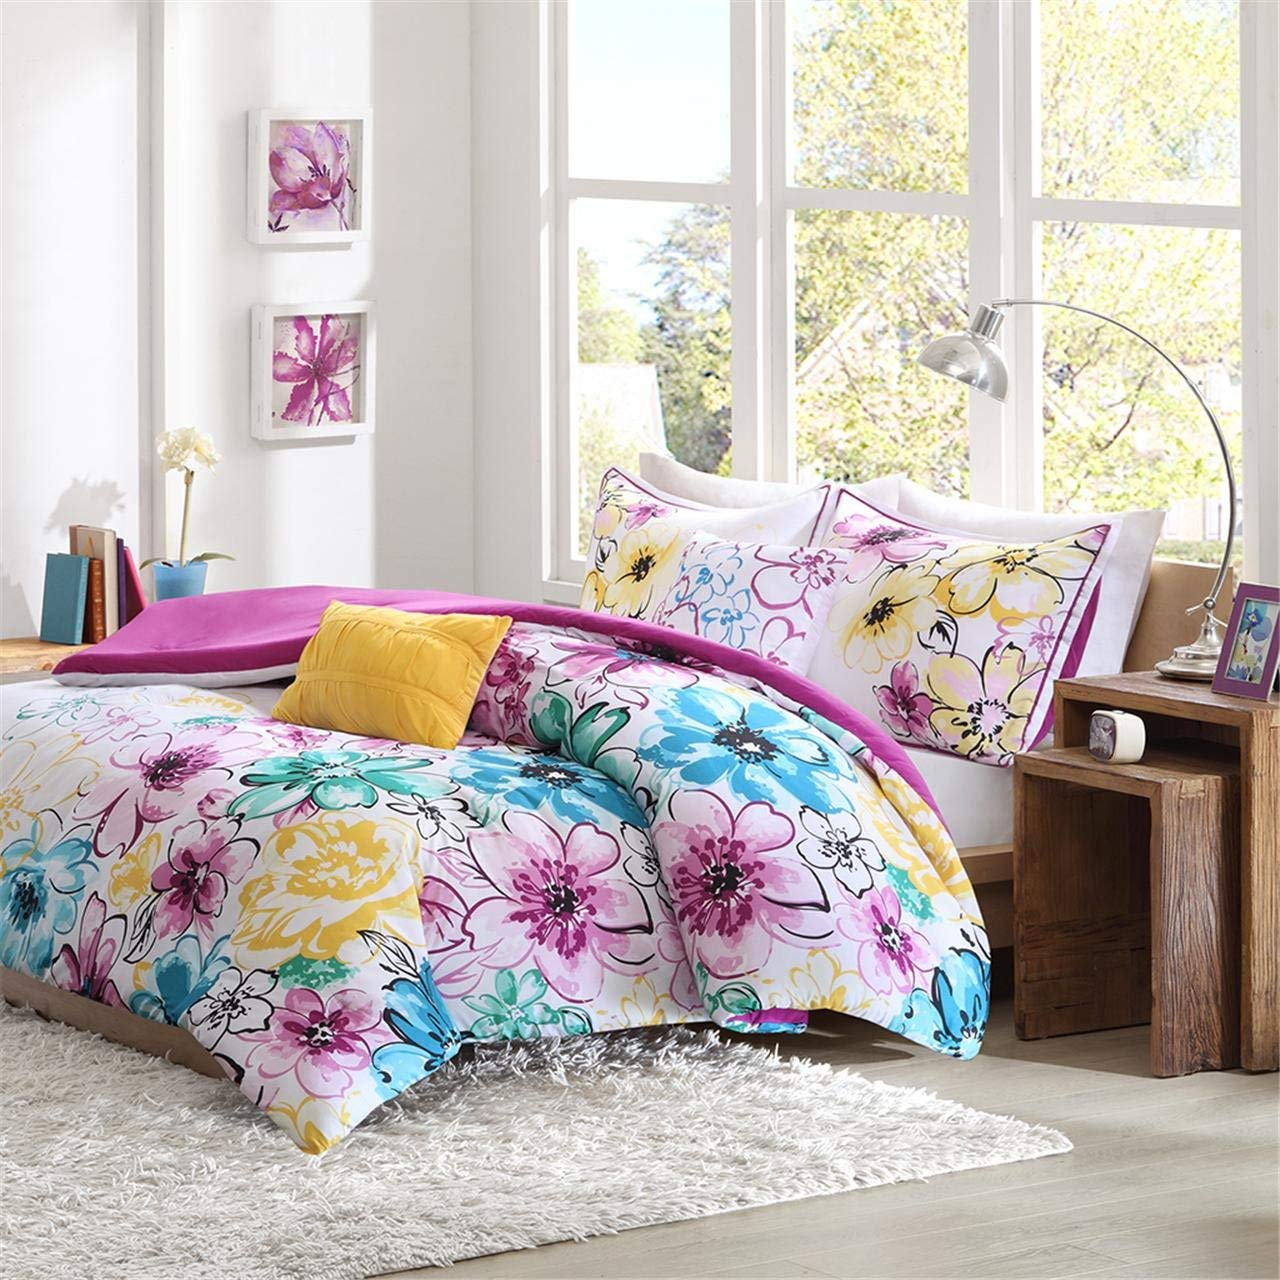 Image of: Modern Floral Bed Set